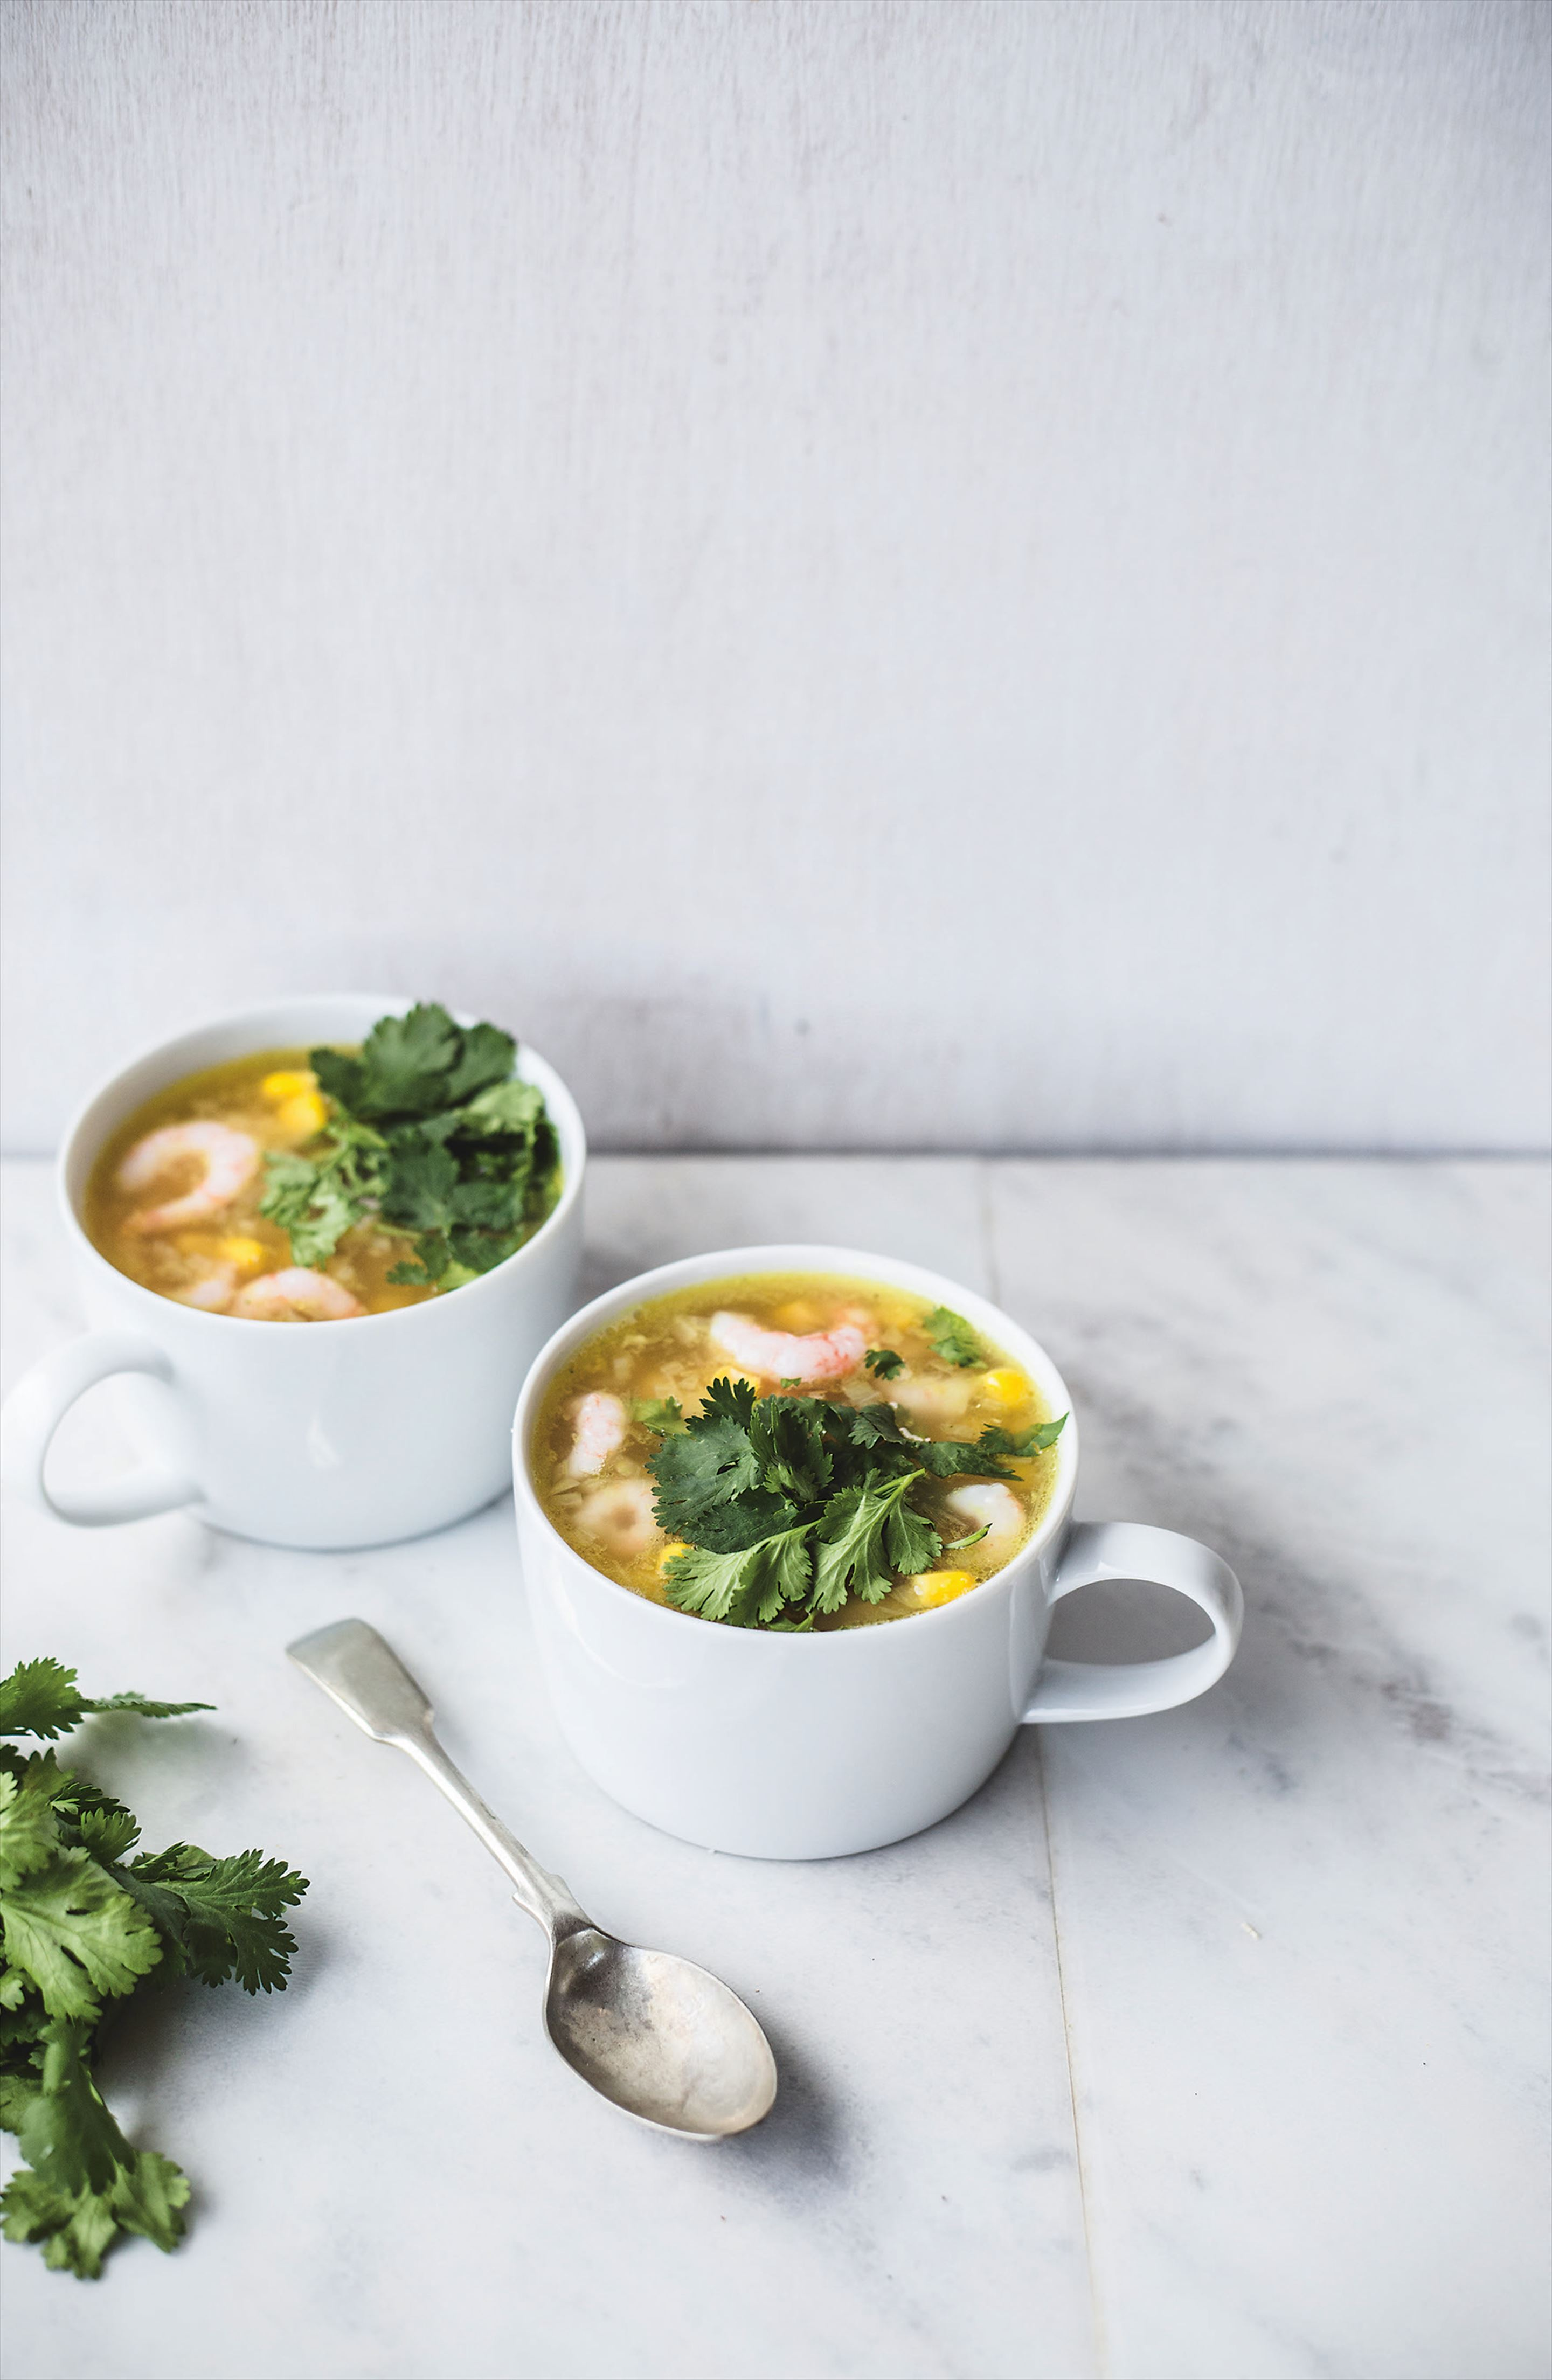 Prawn and corn soup